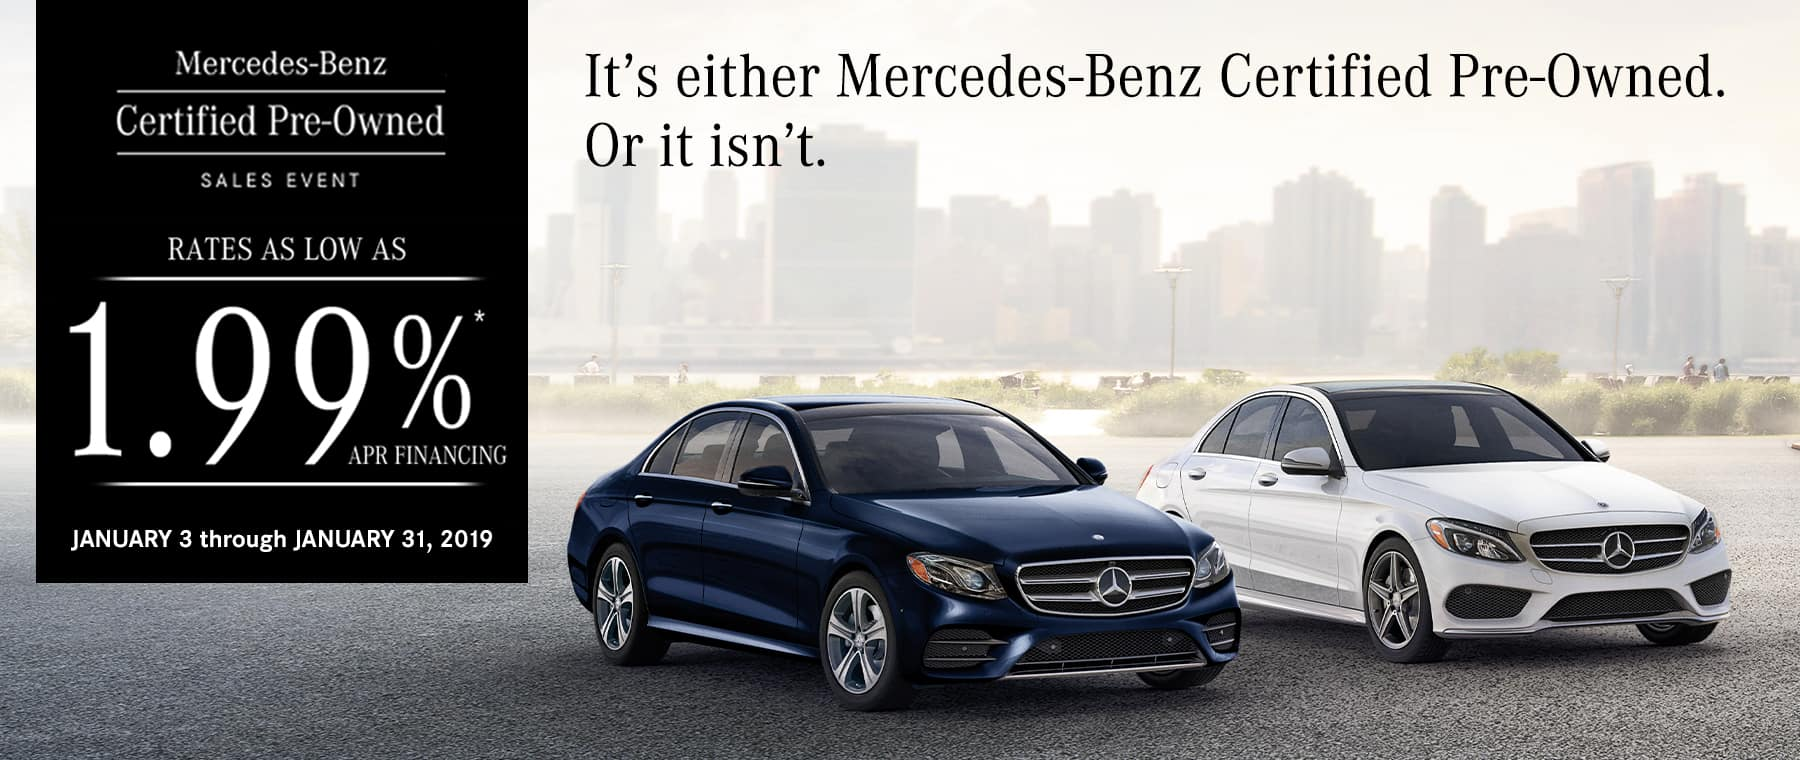 Luxury Car Dealerships Nyc